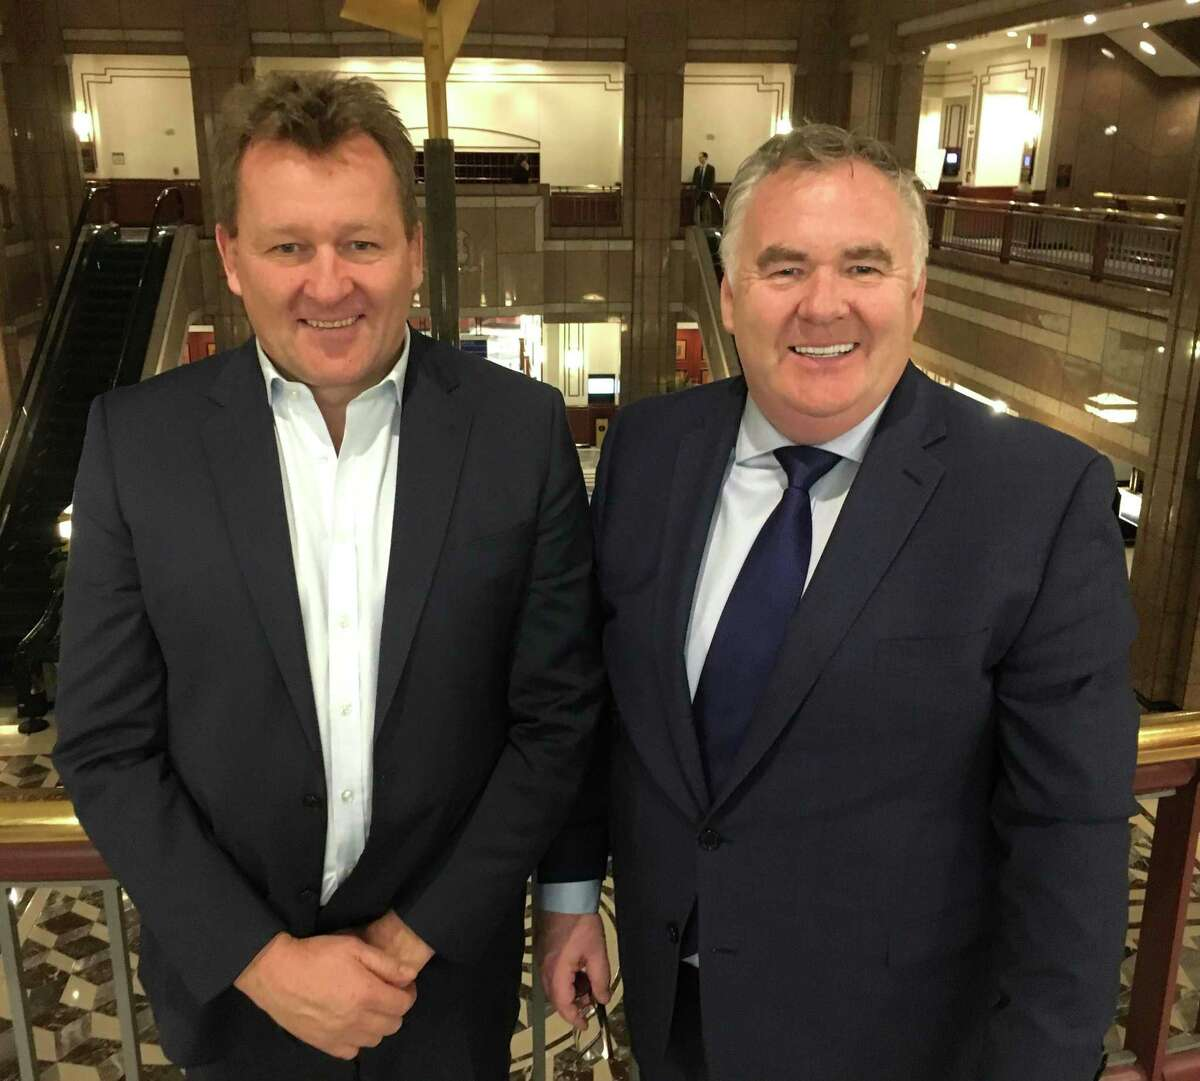 Ted Taylor, left, president of venues at Sportech plc, the company that runs Connecticut OTB locations, and Richard McGuire, the Sportech CEO, at the Legislative Office Building in Hartford, in a 2020 file photo.